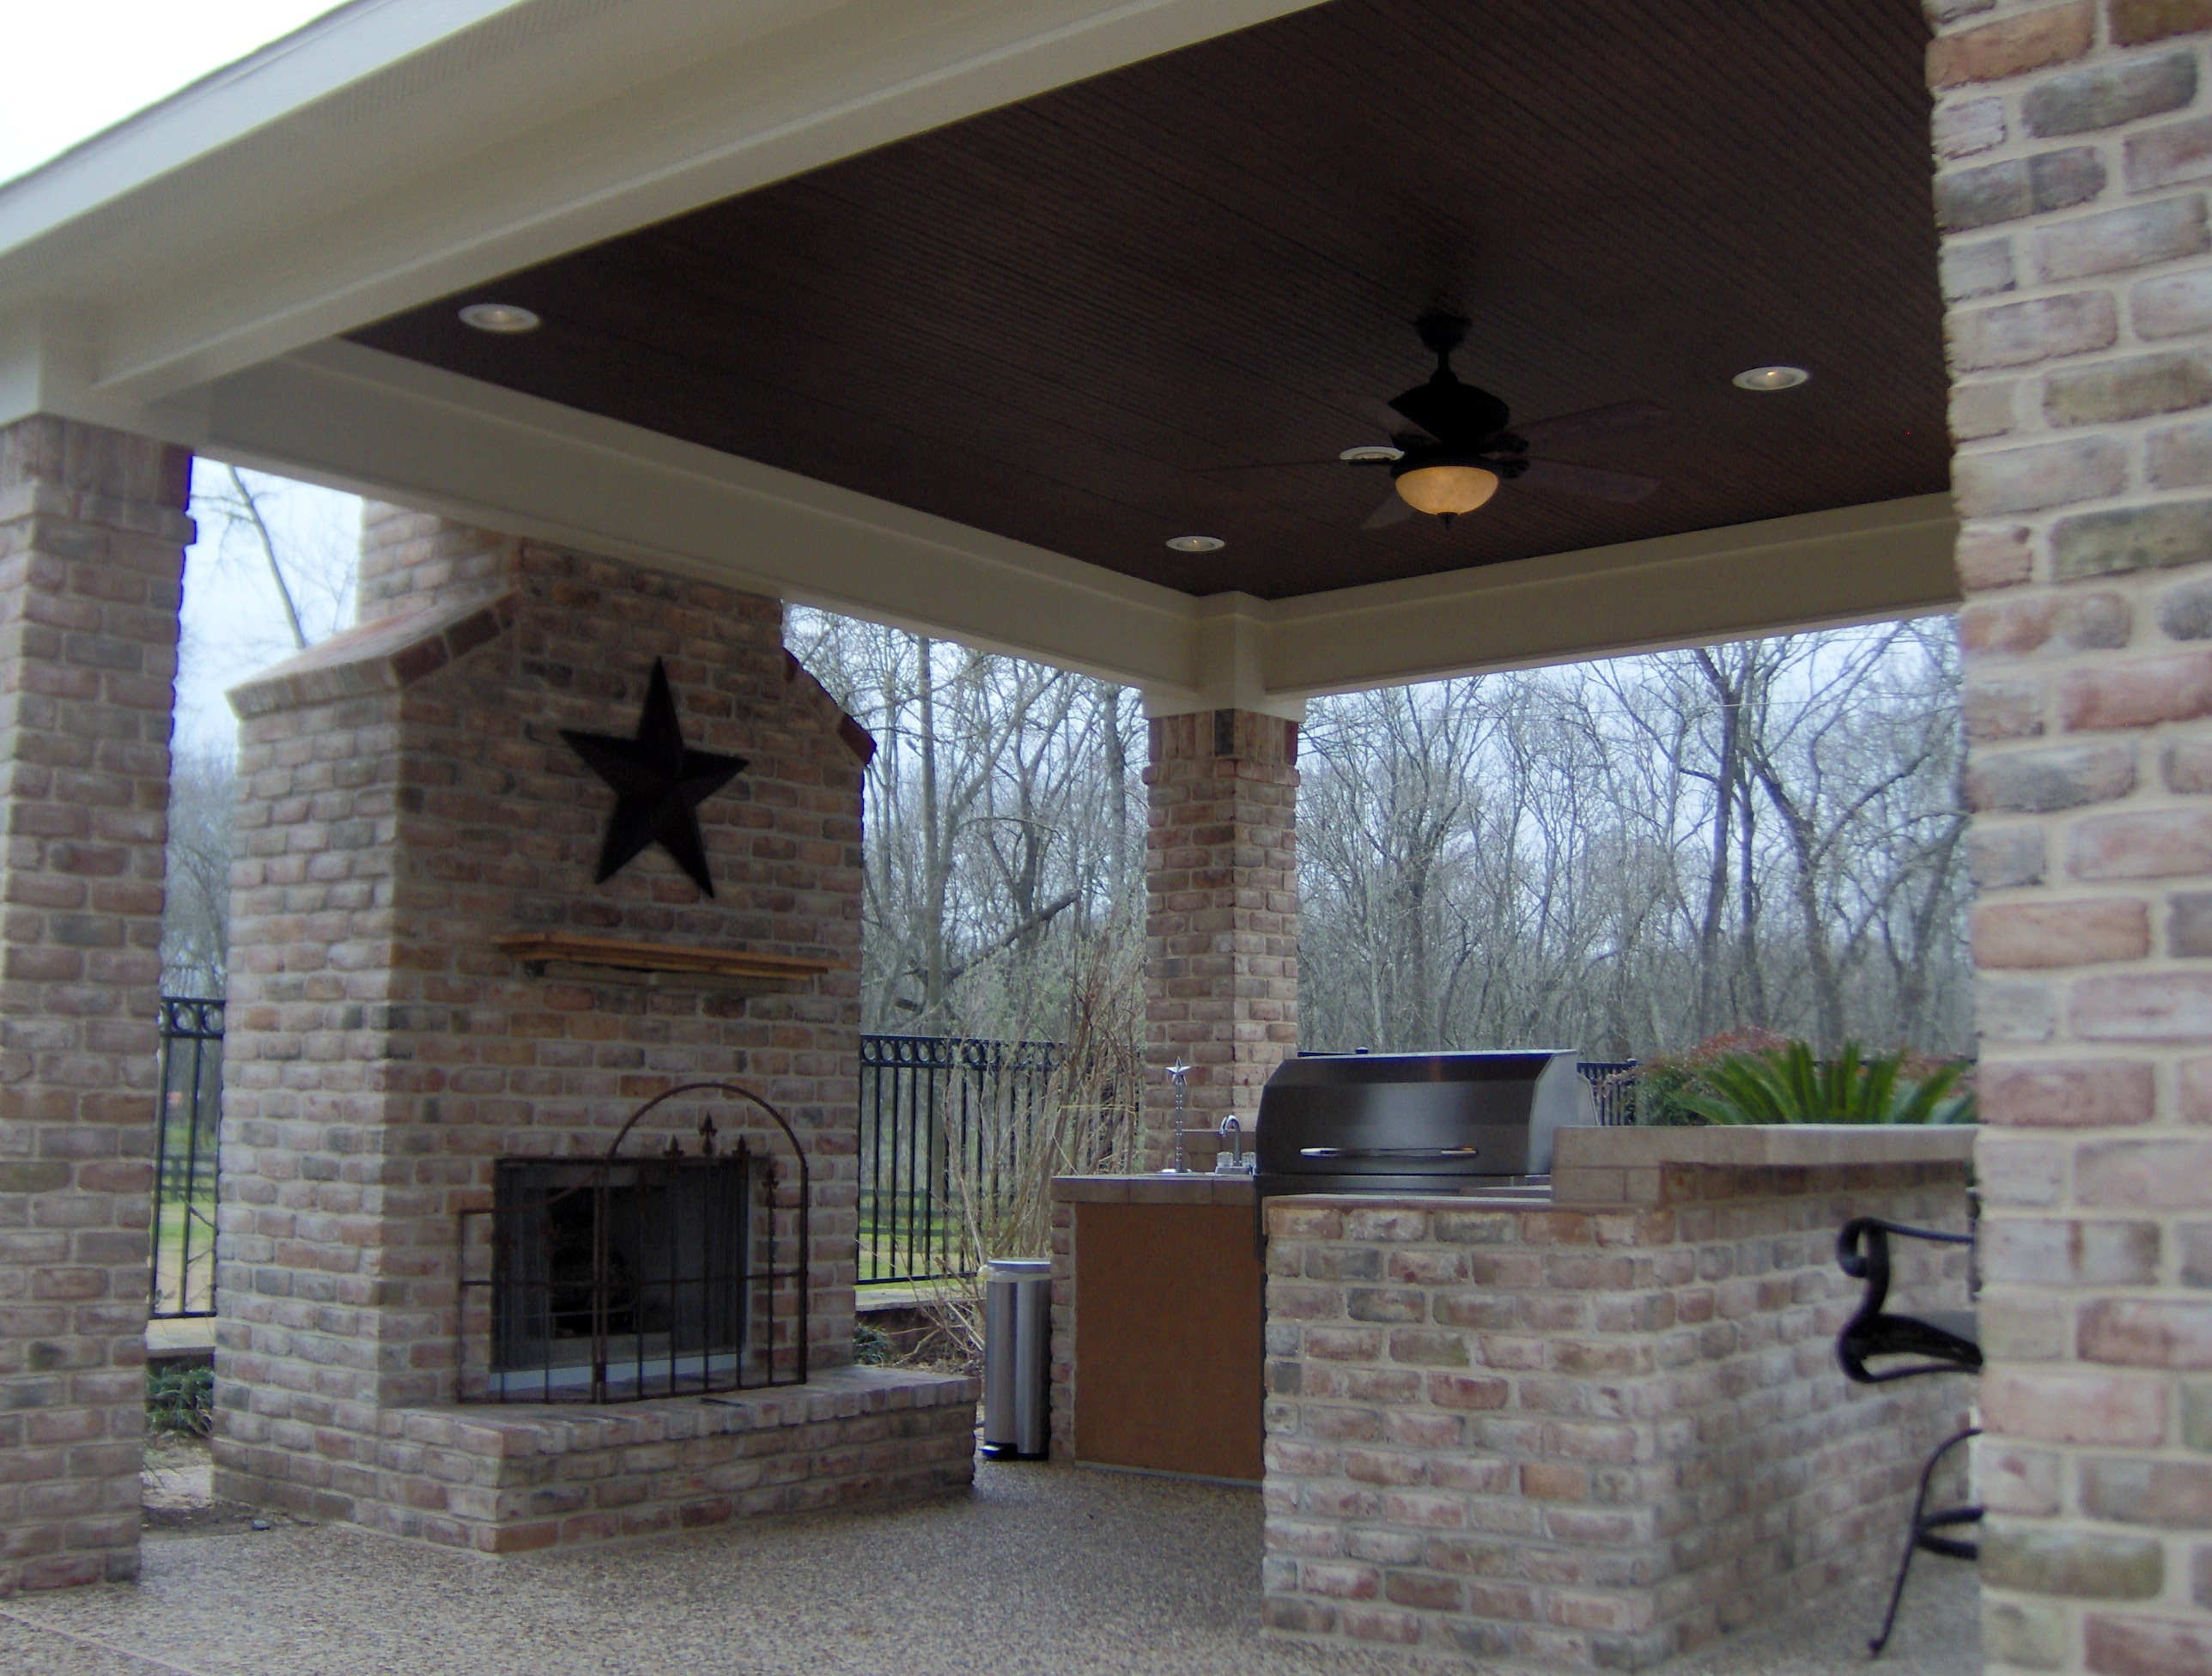 Pictures Of Outdoor Patios With Fireplaces : outdoor fireplace charlotte, outdoor kitchen charlotte, open porch